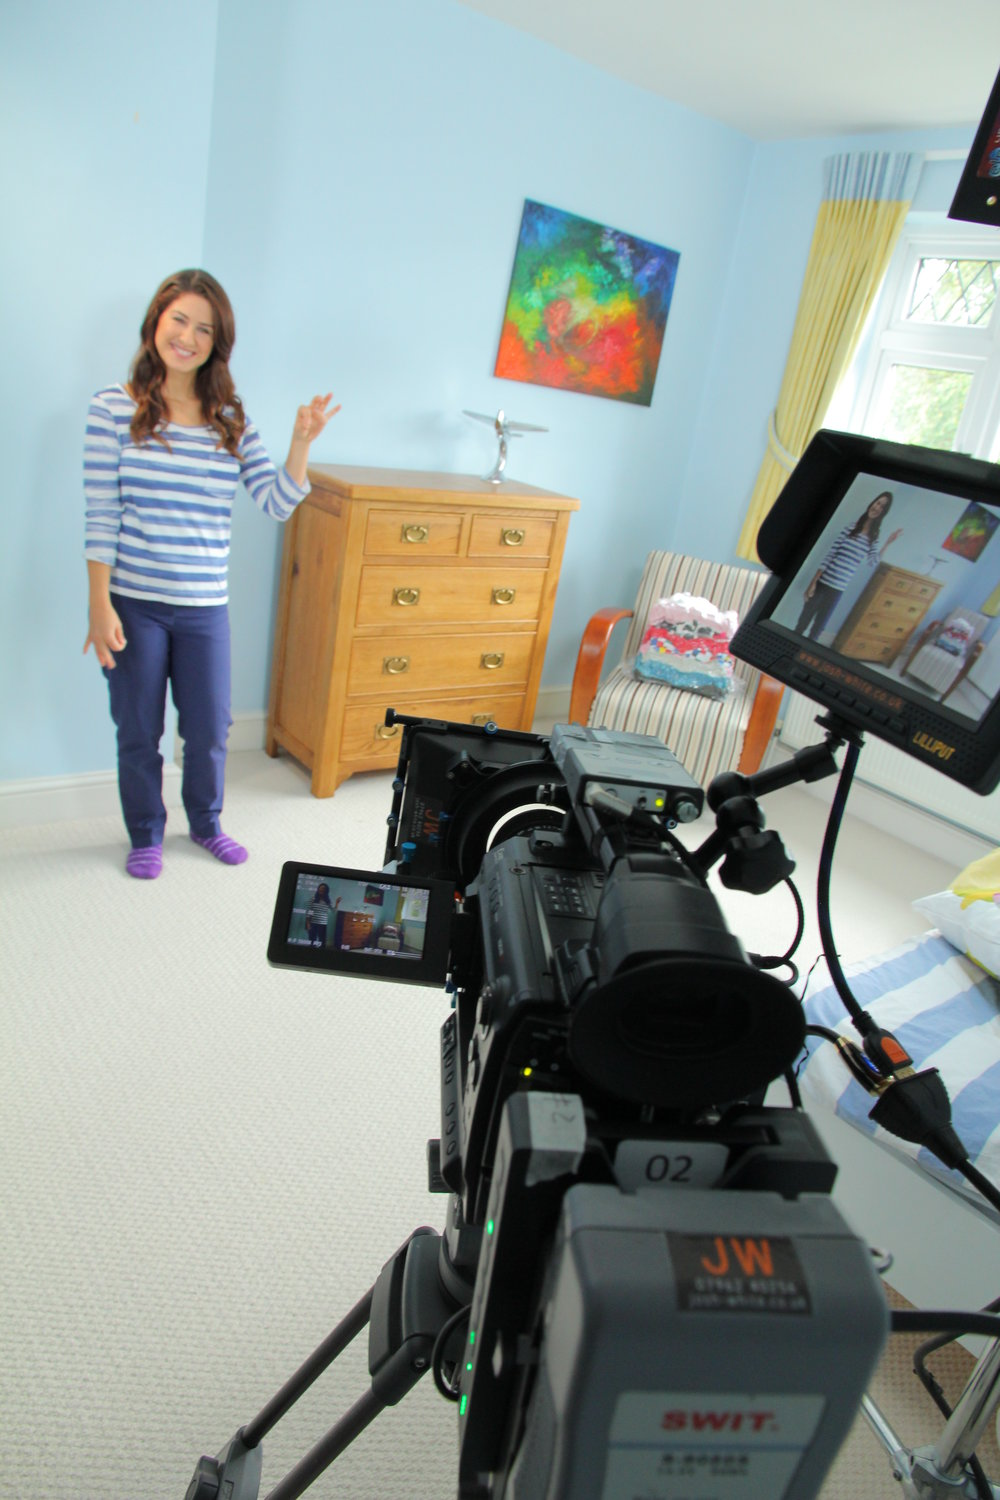 camera pointing at presenter in bedroom (2).jpg